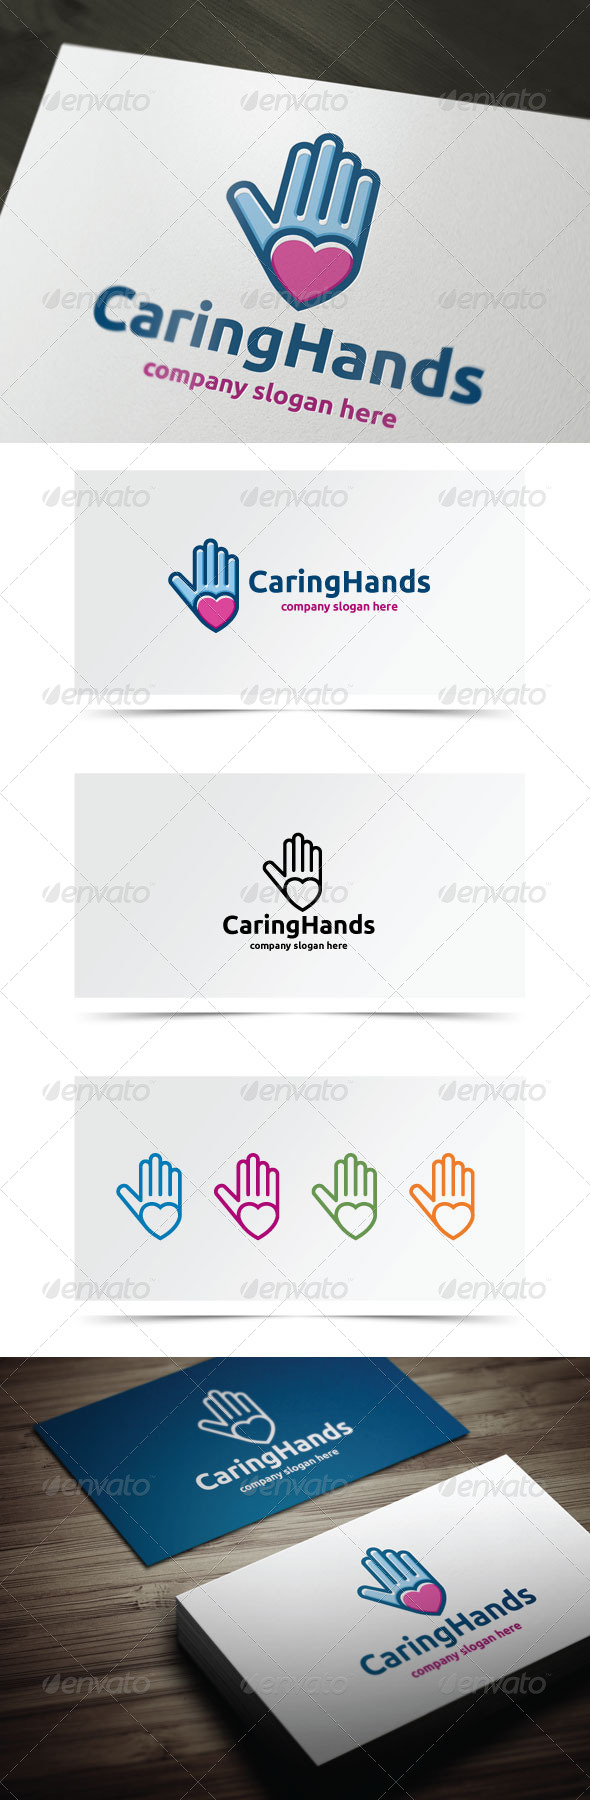 GraphicRiver Caring Hands 7501677